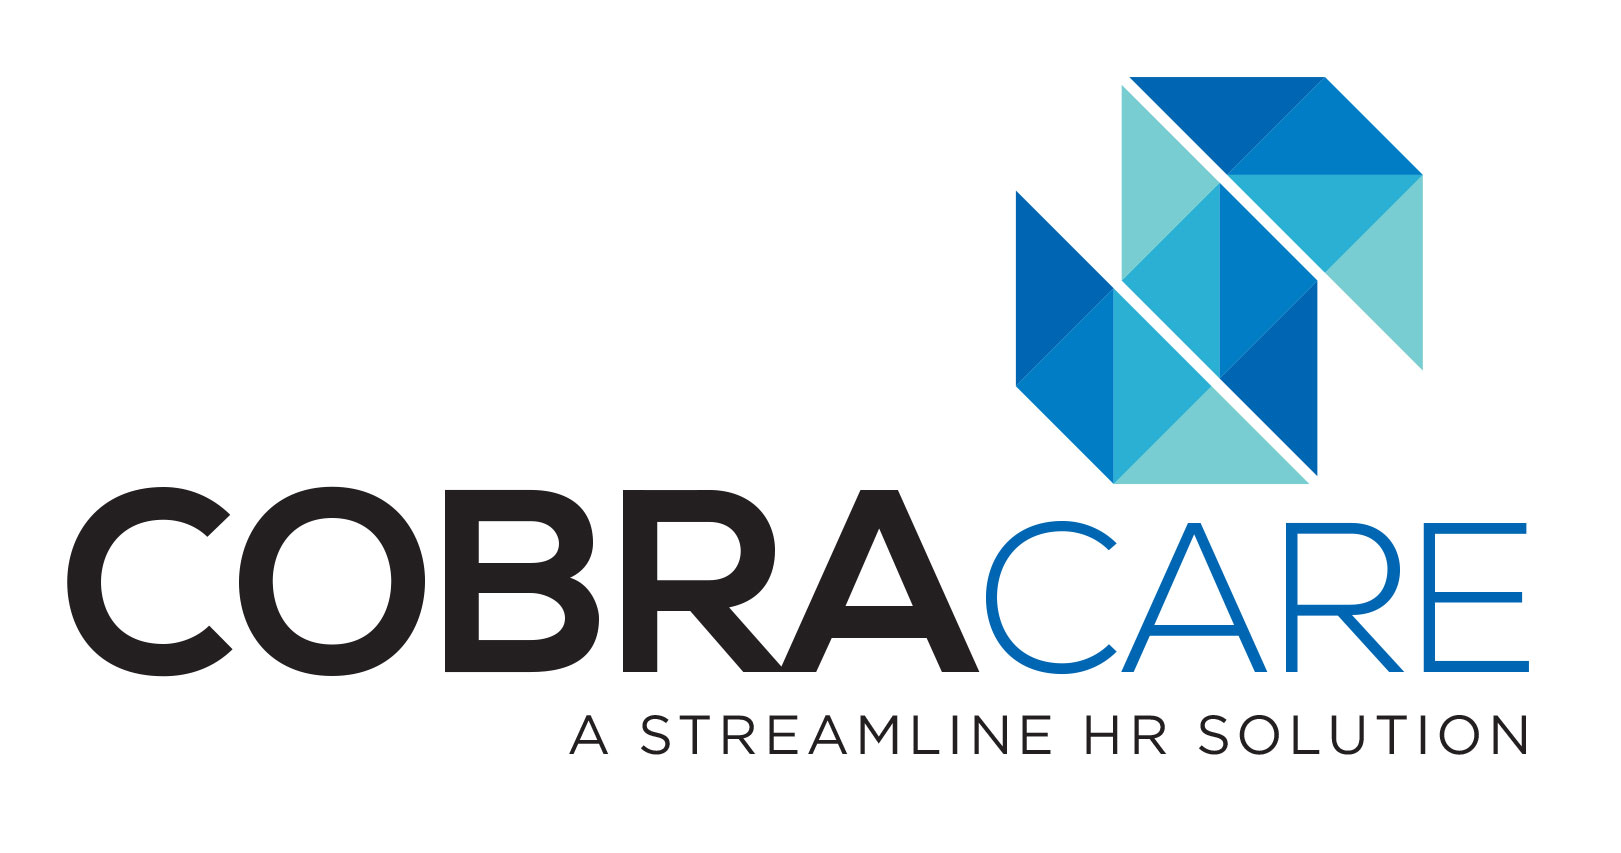 COBRA CARE A Streamline HR Solution